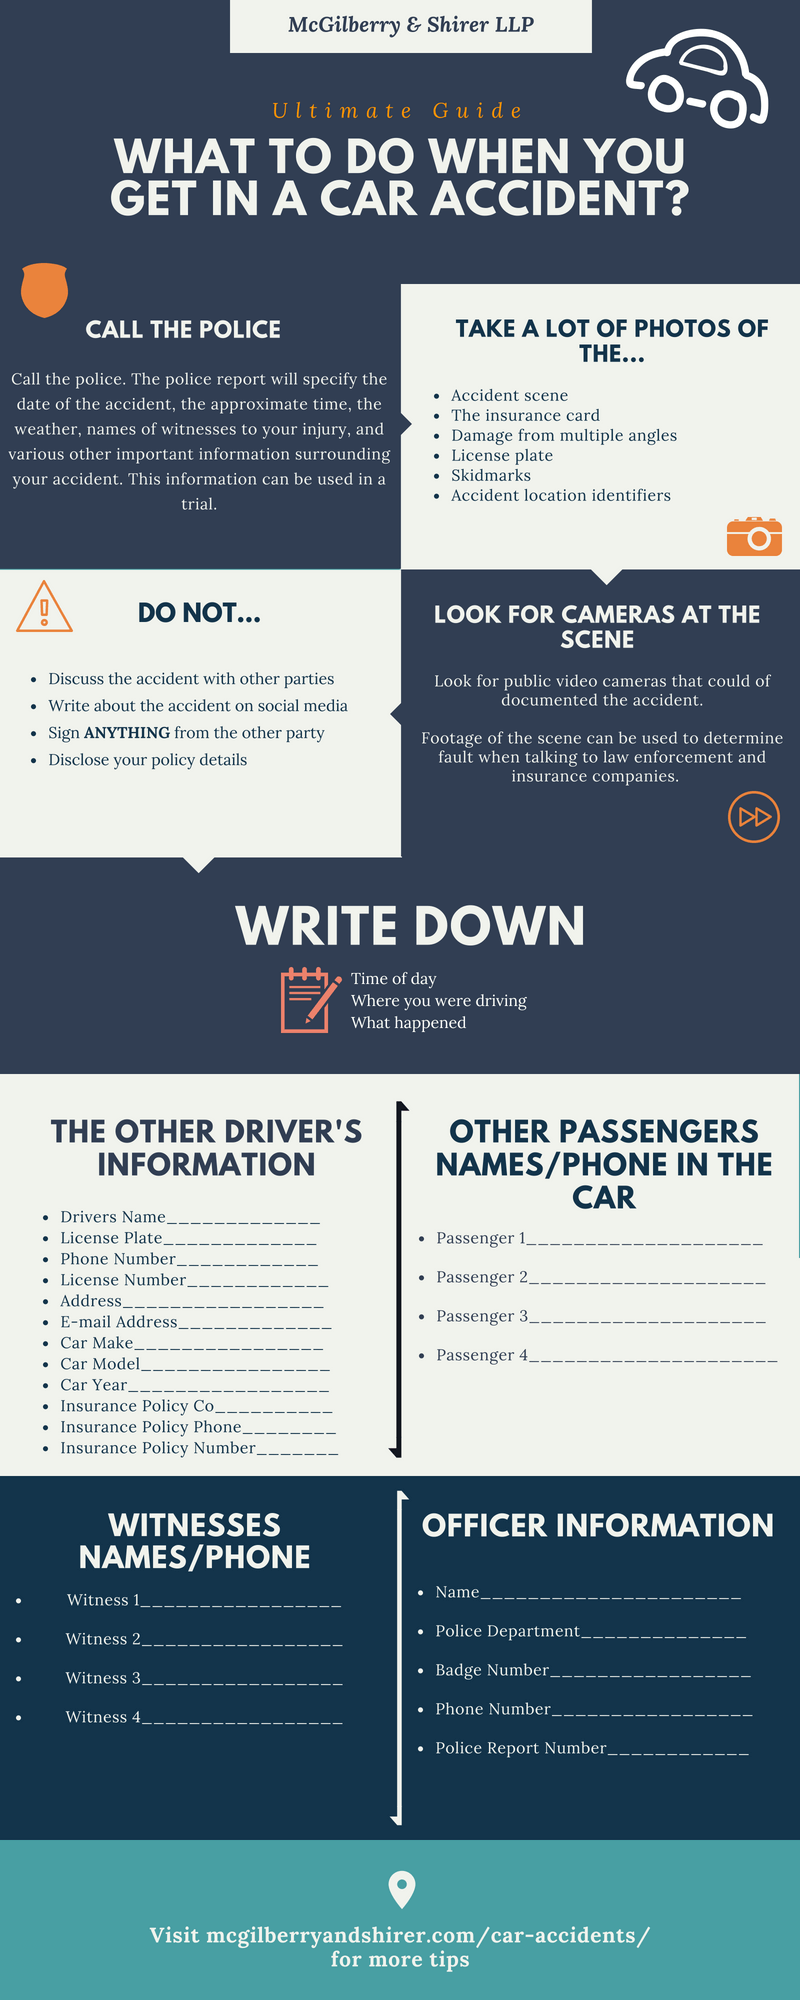 [Infographic] What To Do After a Car Accident in Dallas